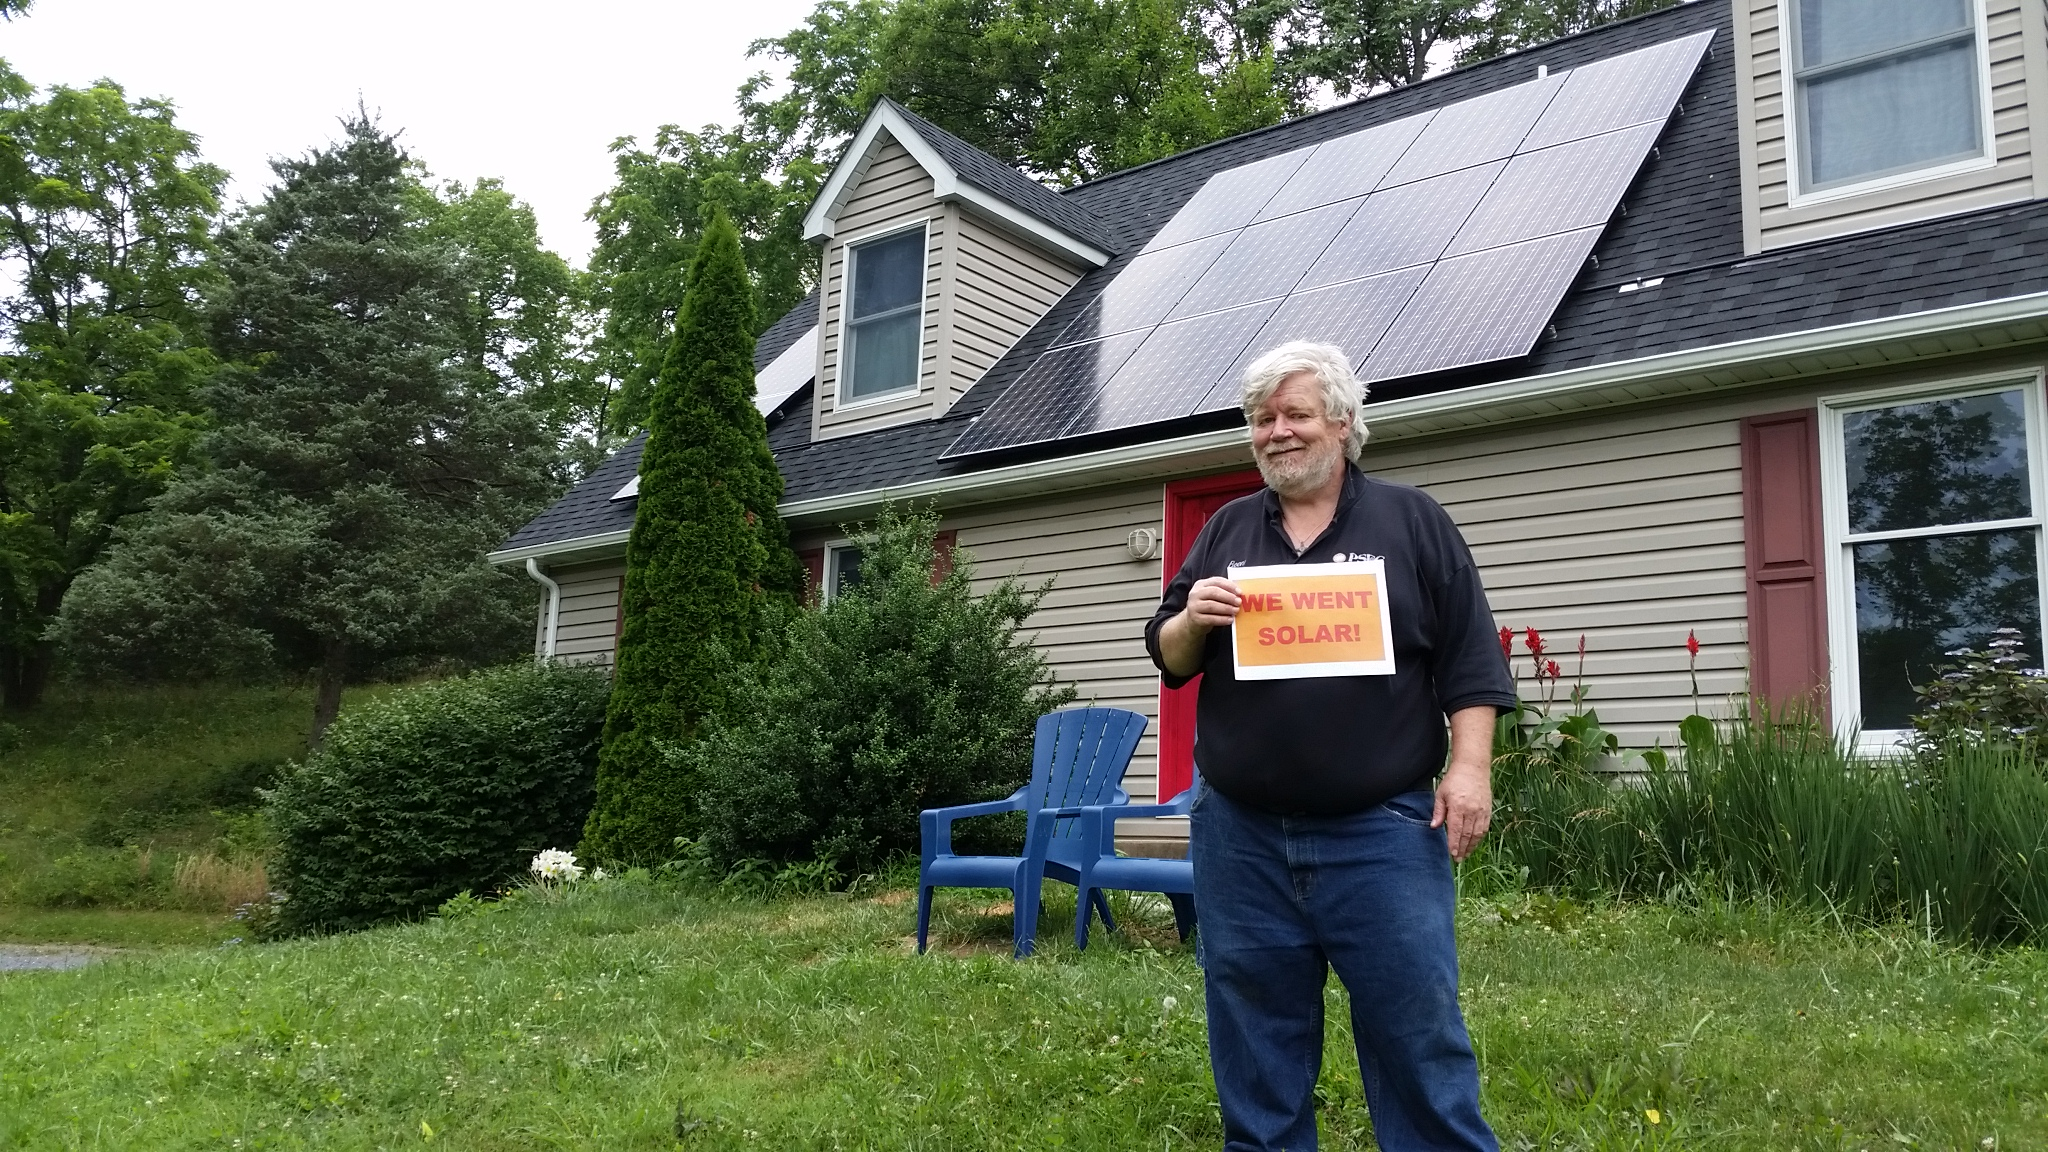 Thom Boone with his solar installation